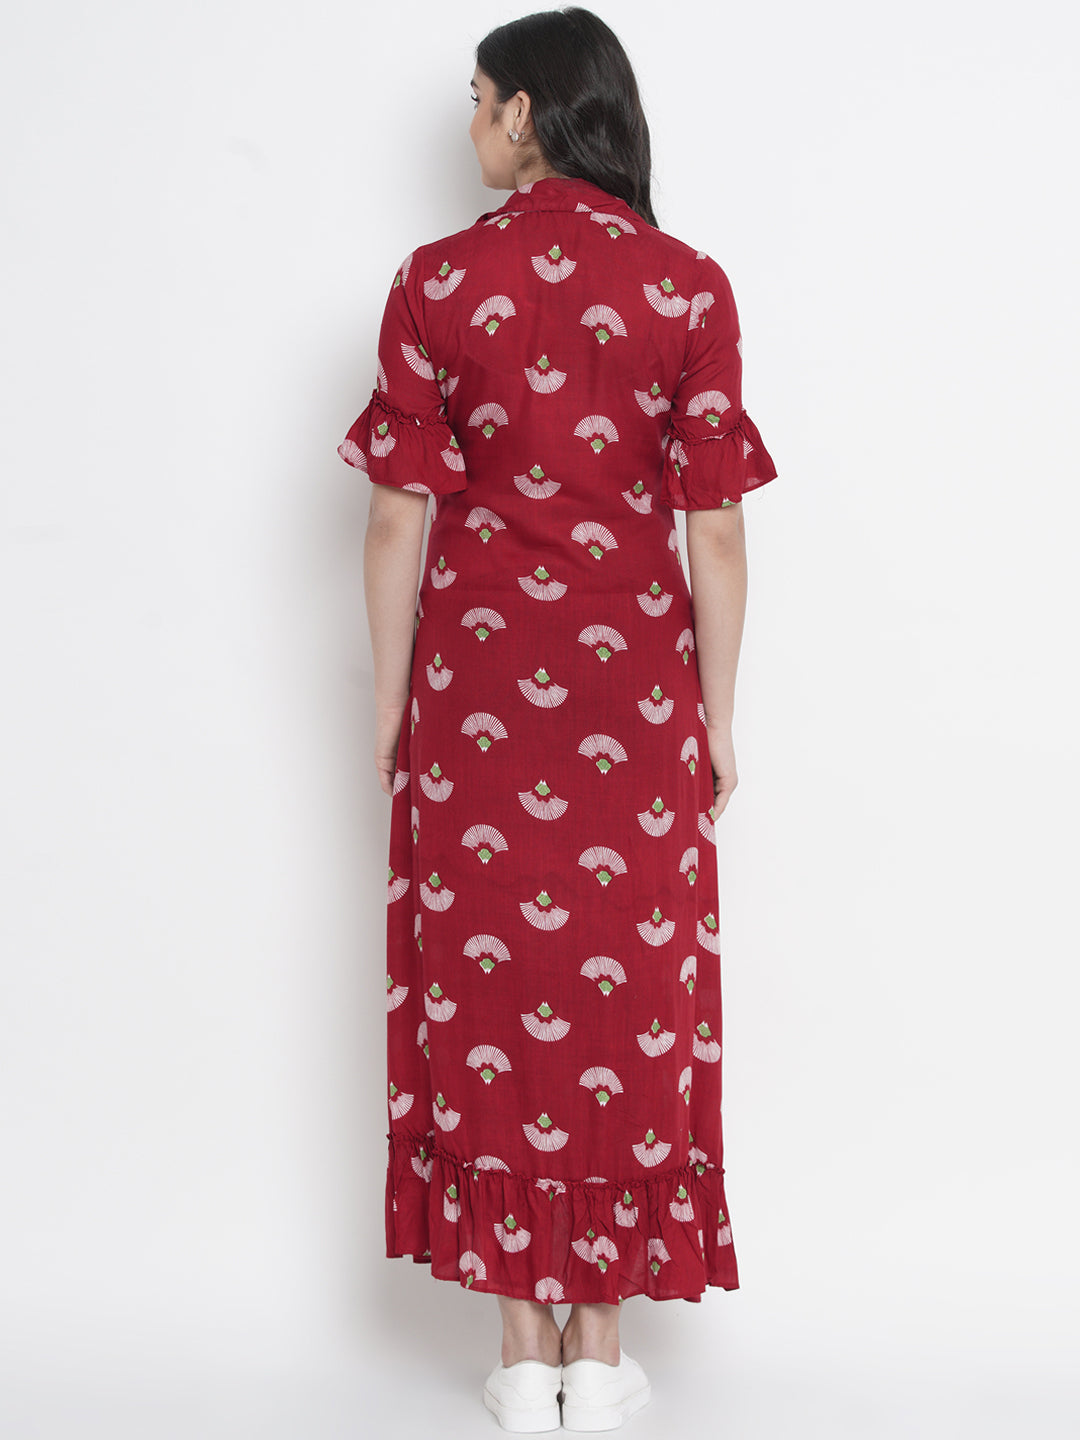 Mine4Nine - Dress - Cherry Red A-Line Maxi Maternity Dress w/ Traditional Print, Made of Rayon